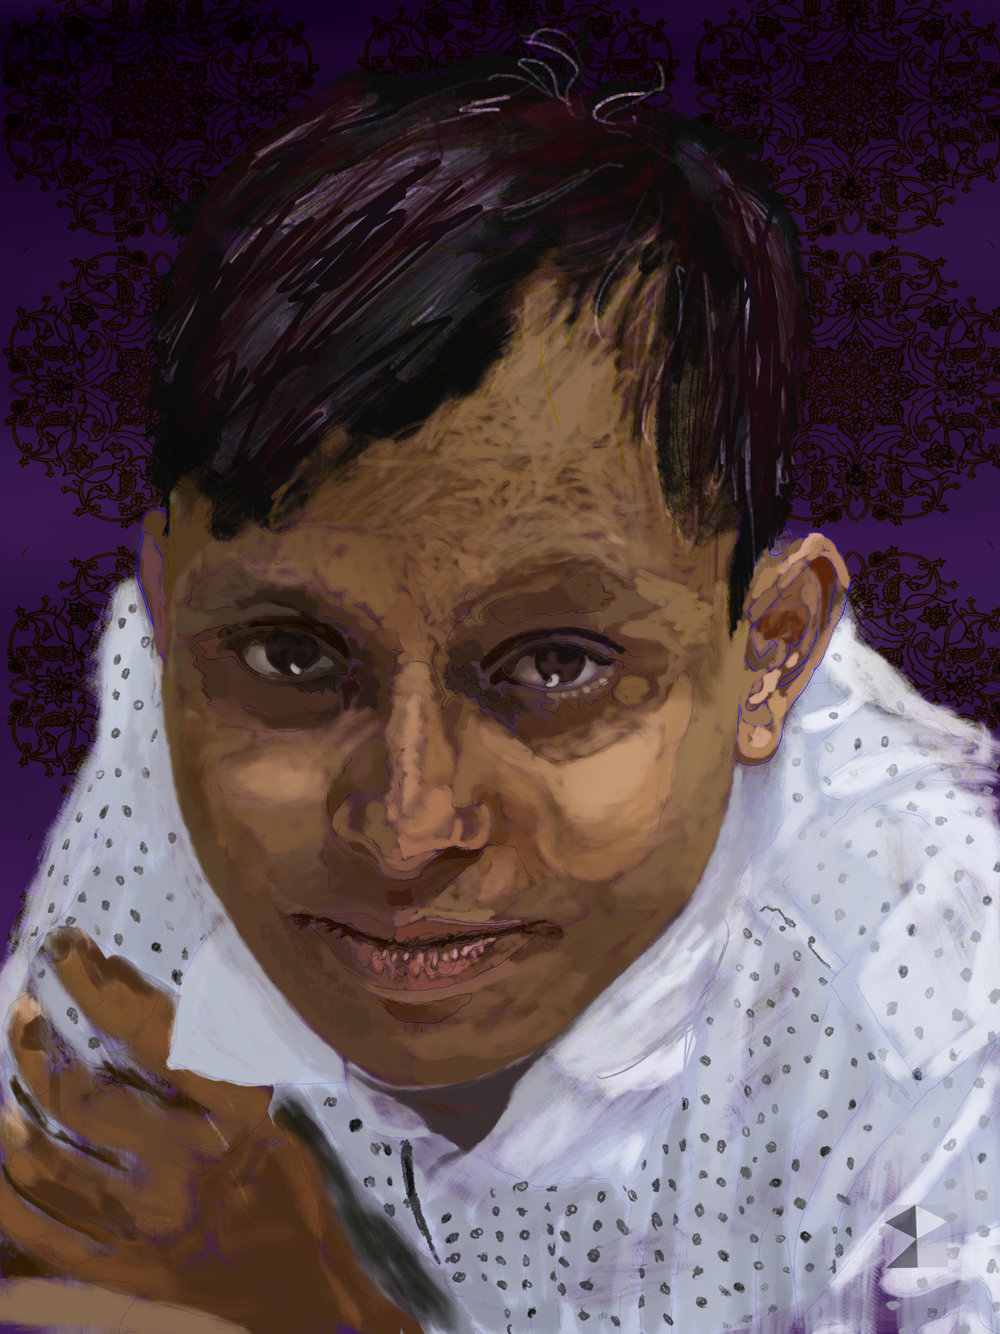 Bhakta    FBSelfie, ProCreate, Apple Pencil, Photoshop, iPad, Desktop Digital Image Dimensions Variable © SP.2018